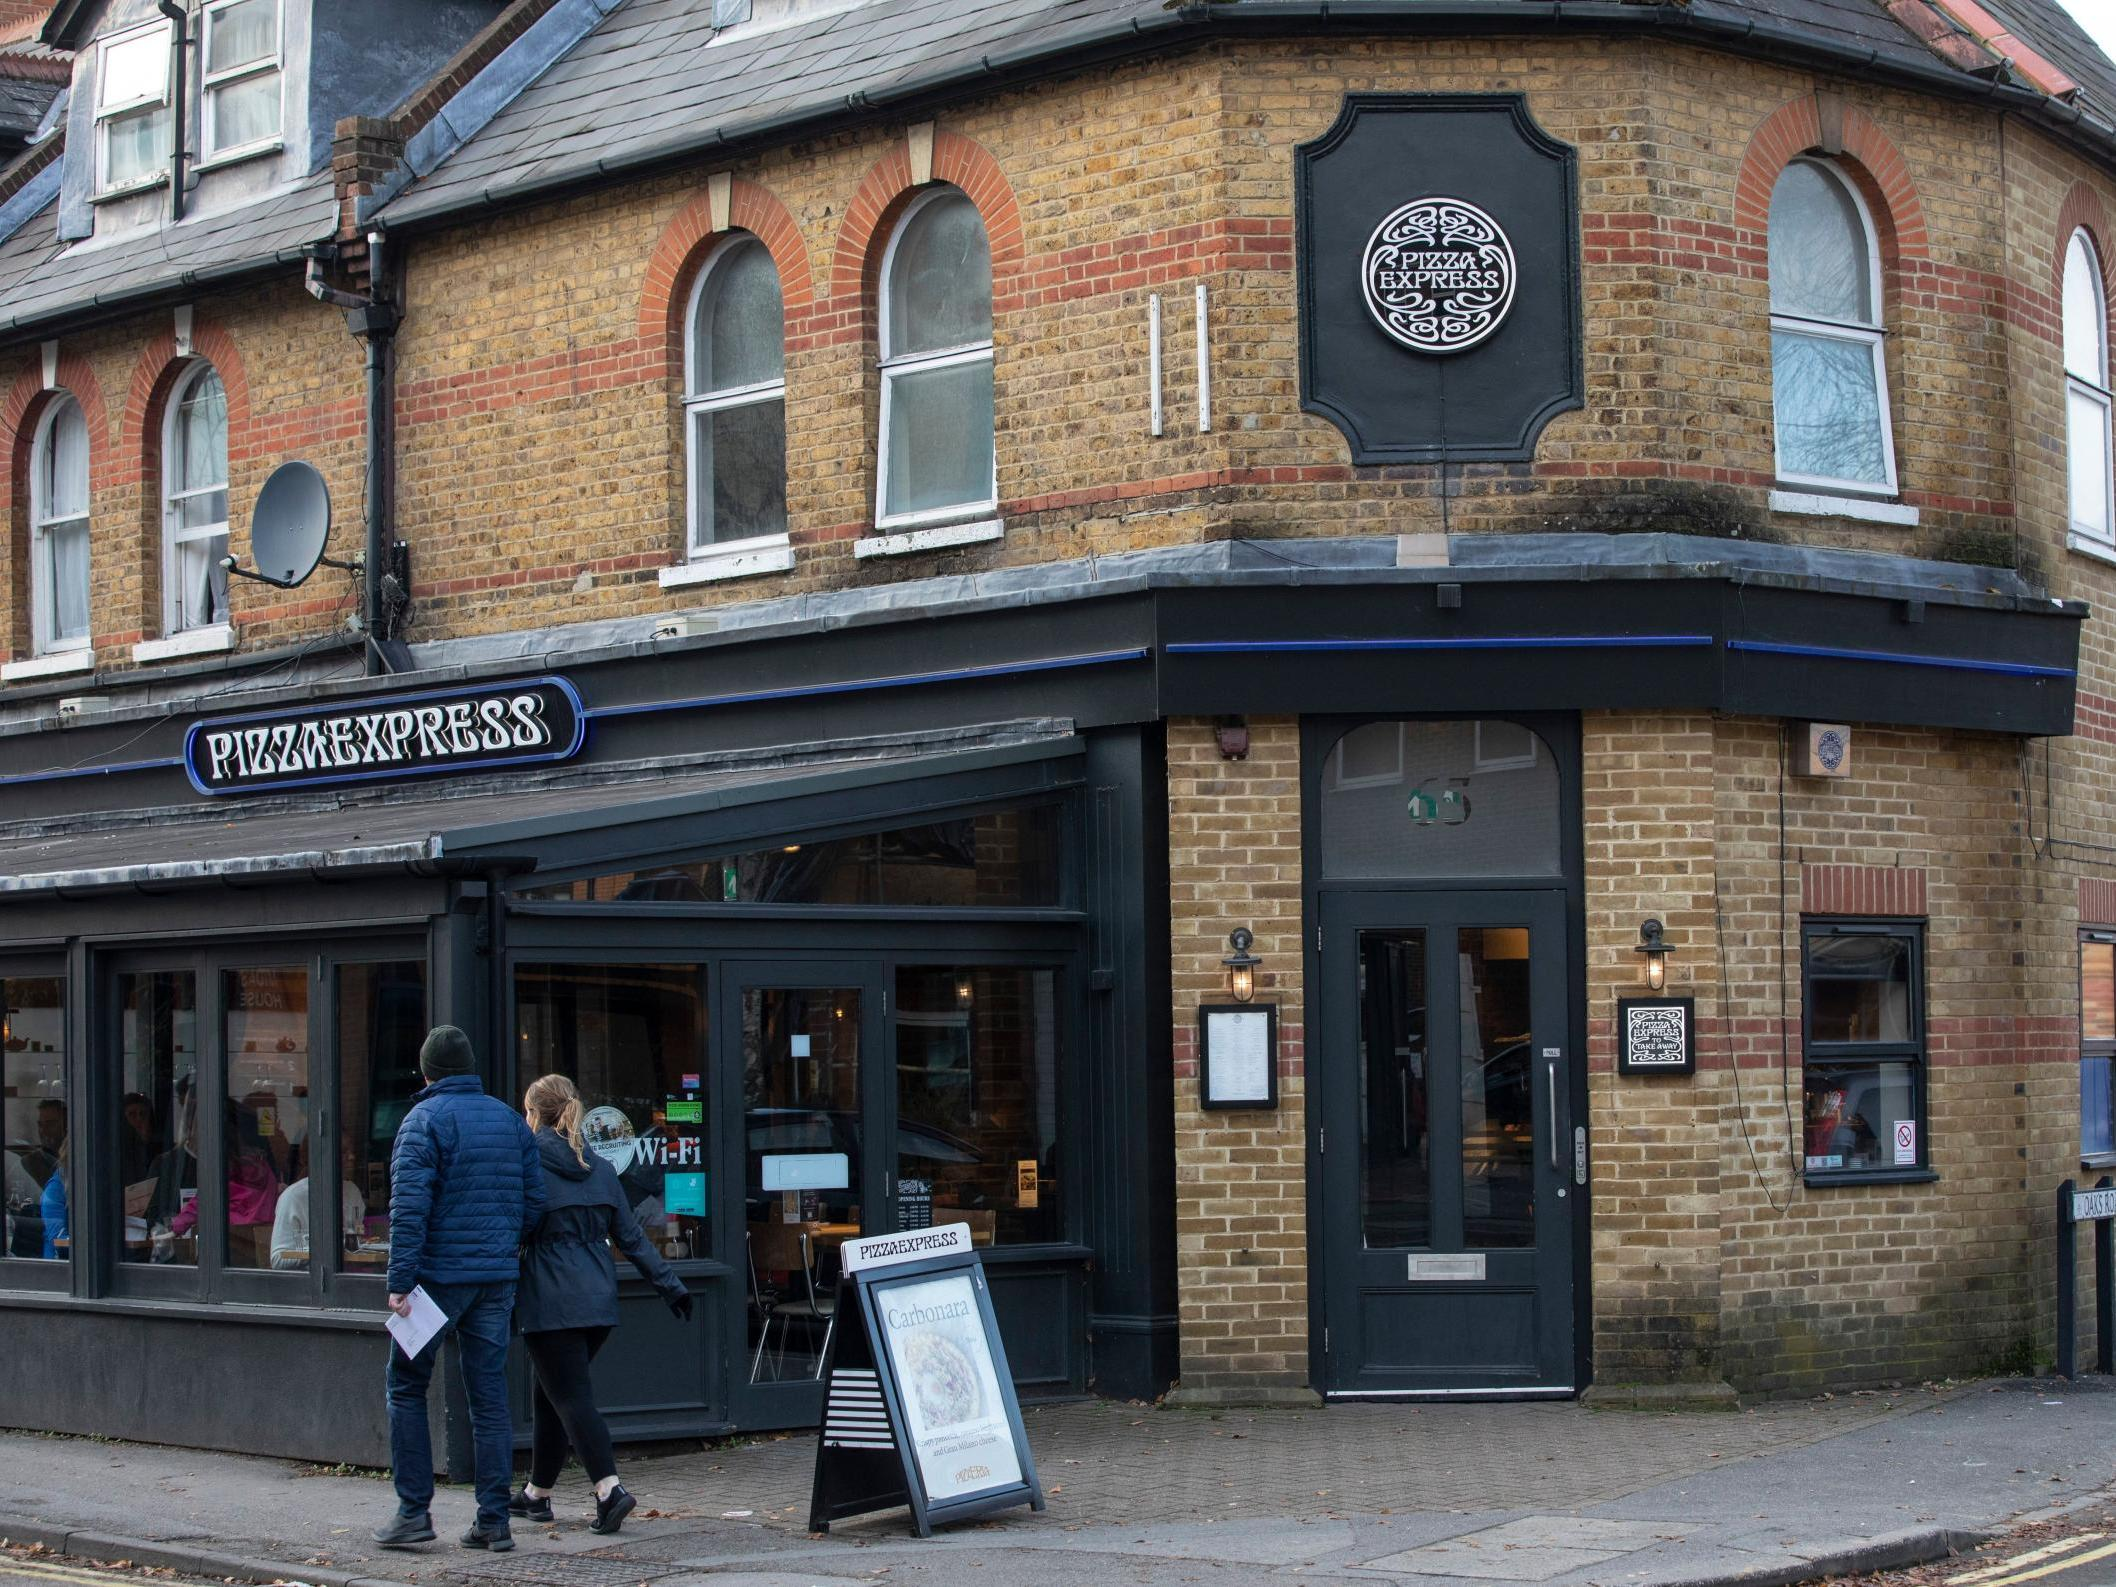 Trip Advisor Suspends Reviews For Pizza Express In Woking